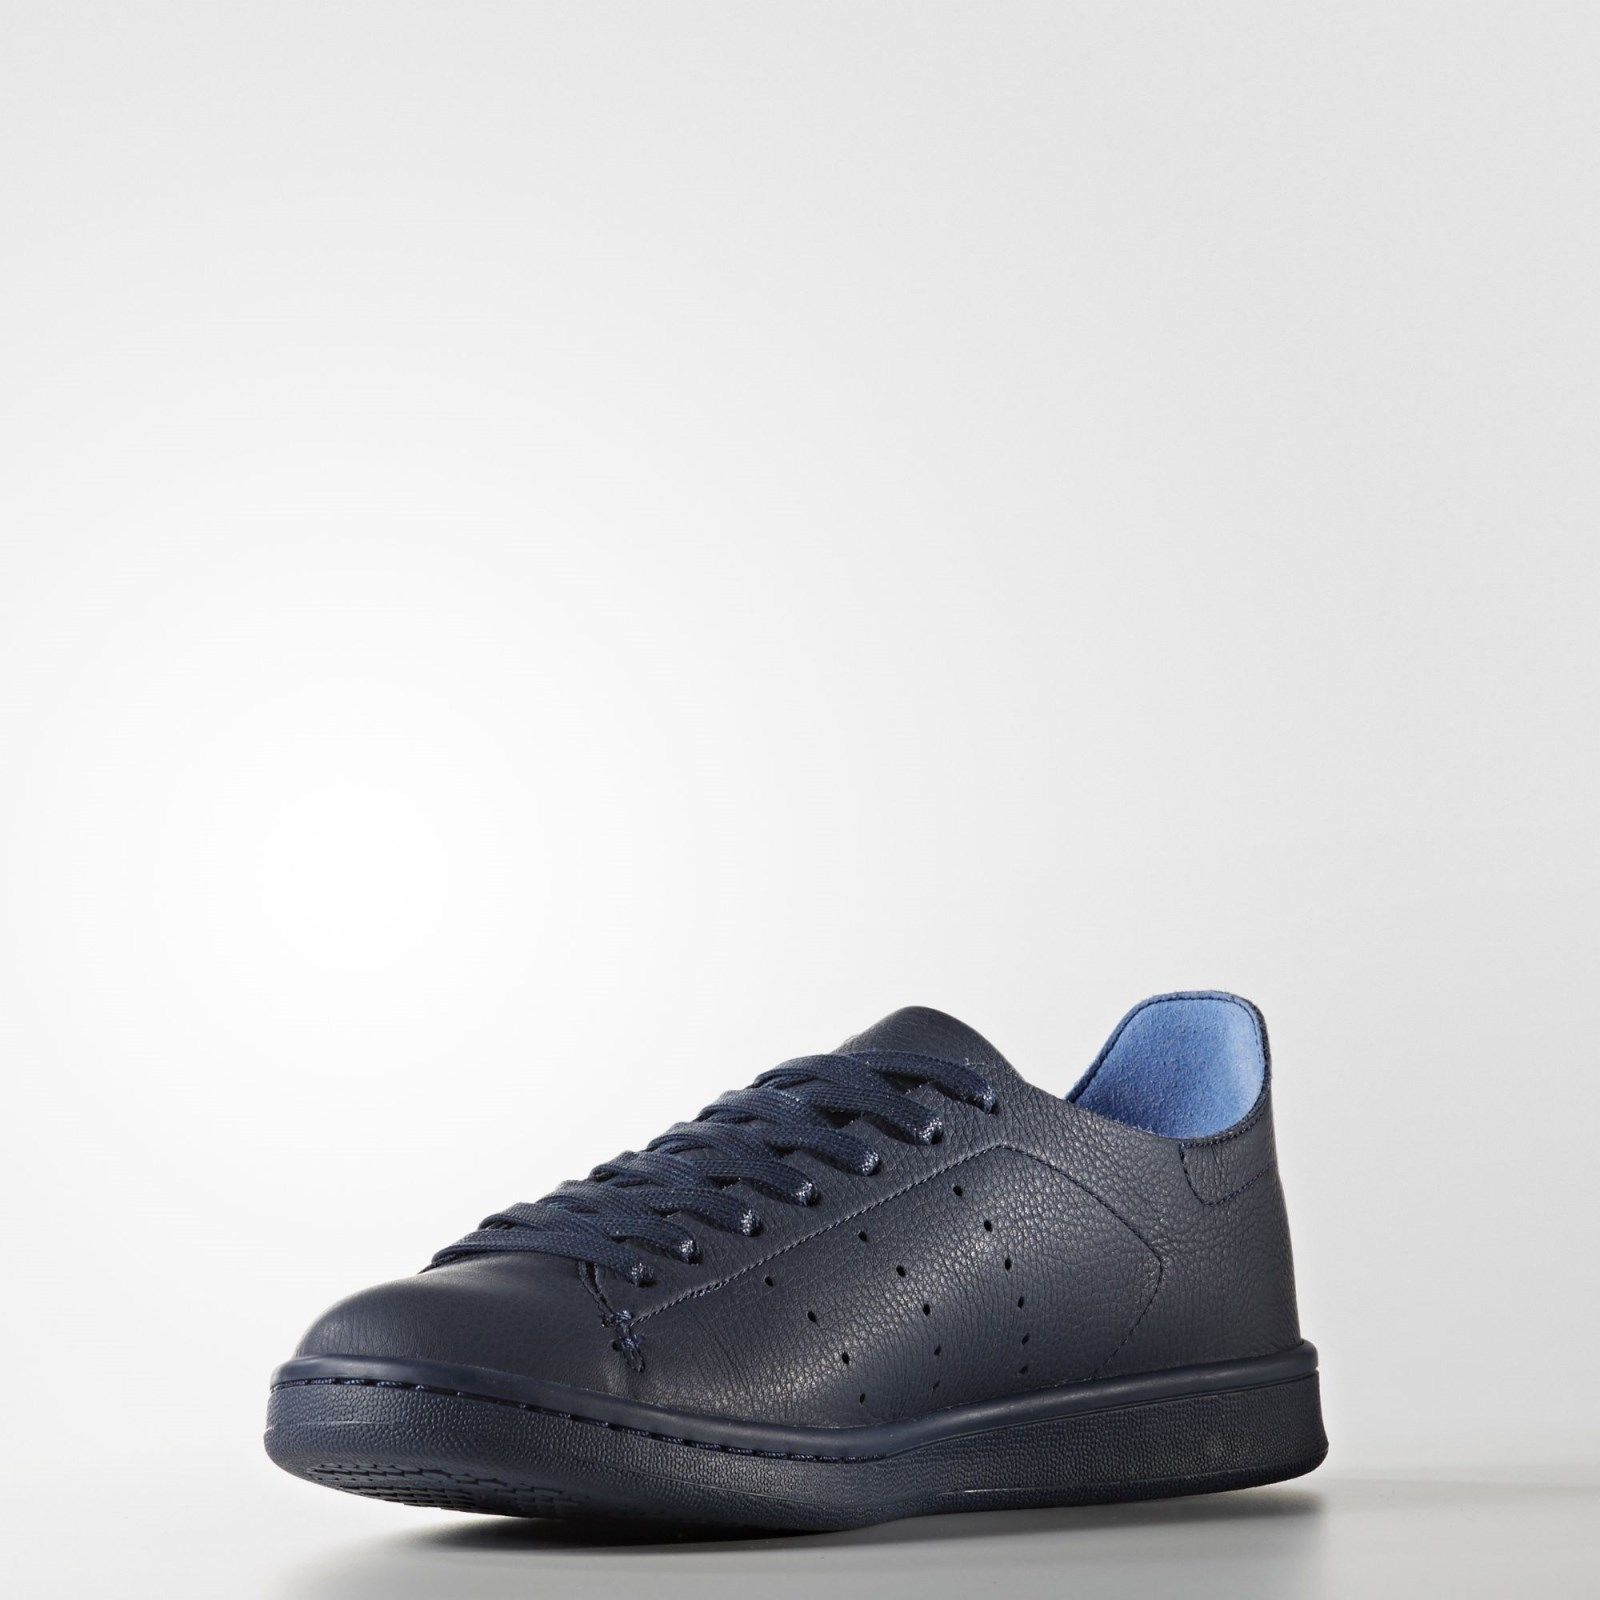 new styles 100f7 30965 Adidas Originals Men s Stan Smith Leather Sock Shoes Siz 9.5 us BZ0231 LAST  PAIR